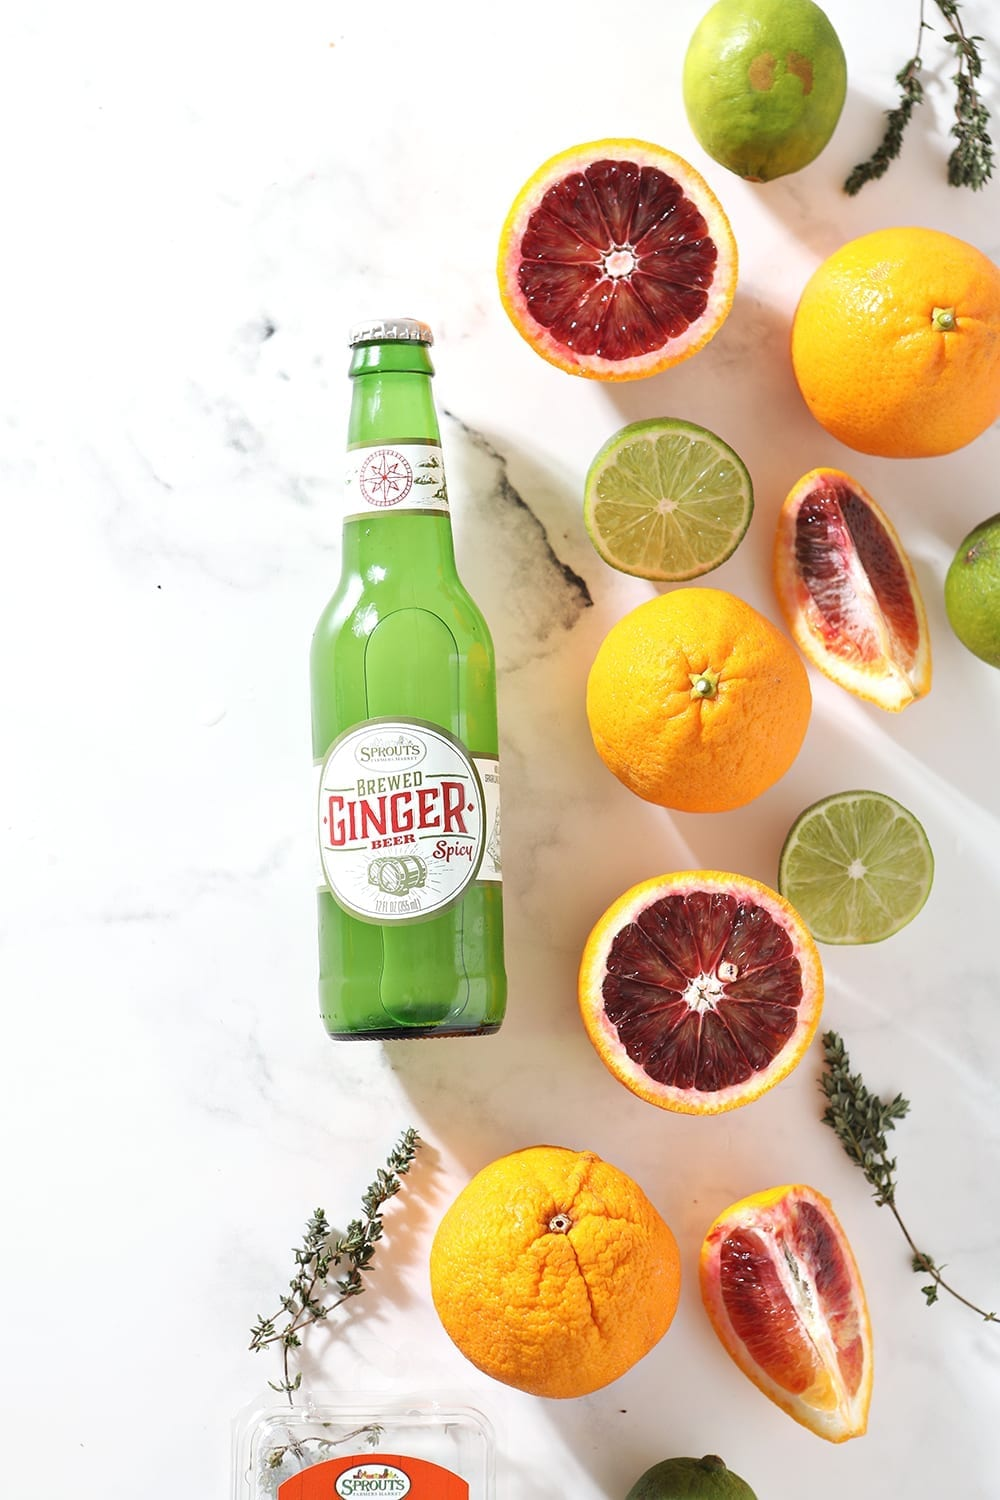 A ginger beer is surrounded by blood oranges, limes and fresh thyme on a marble background